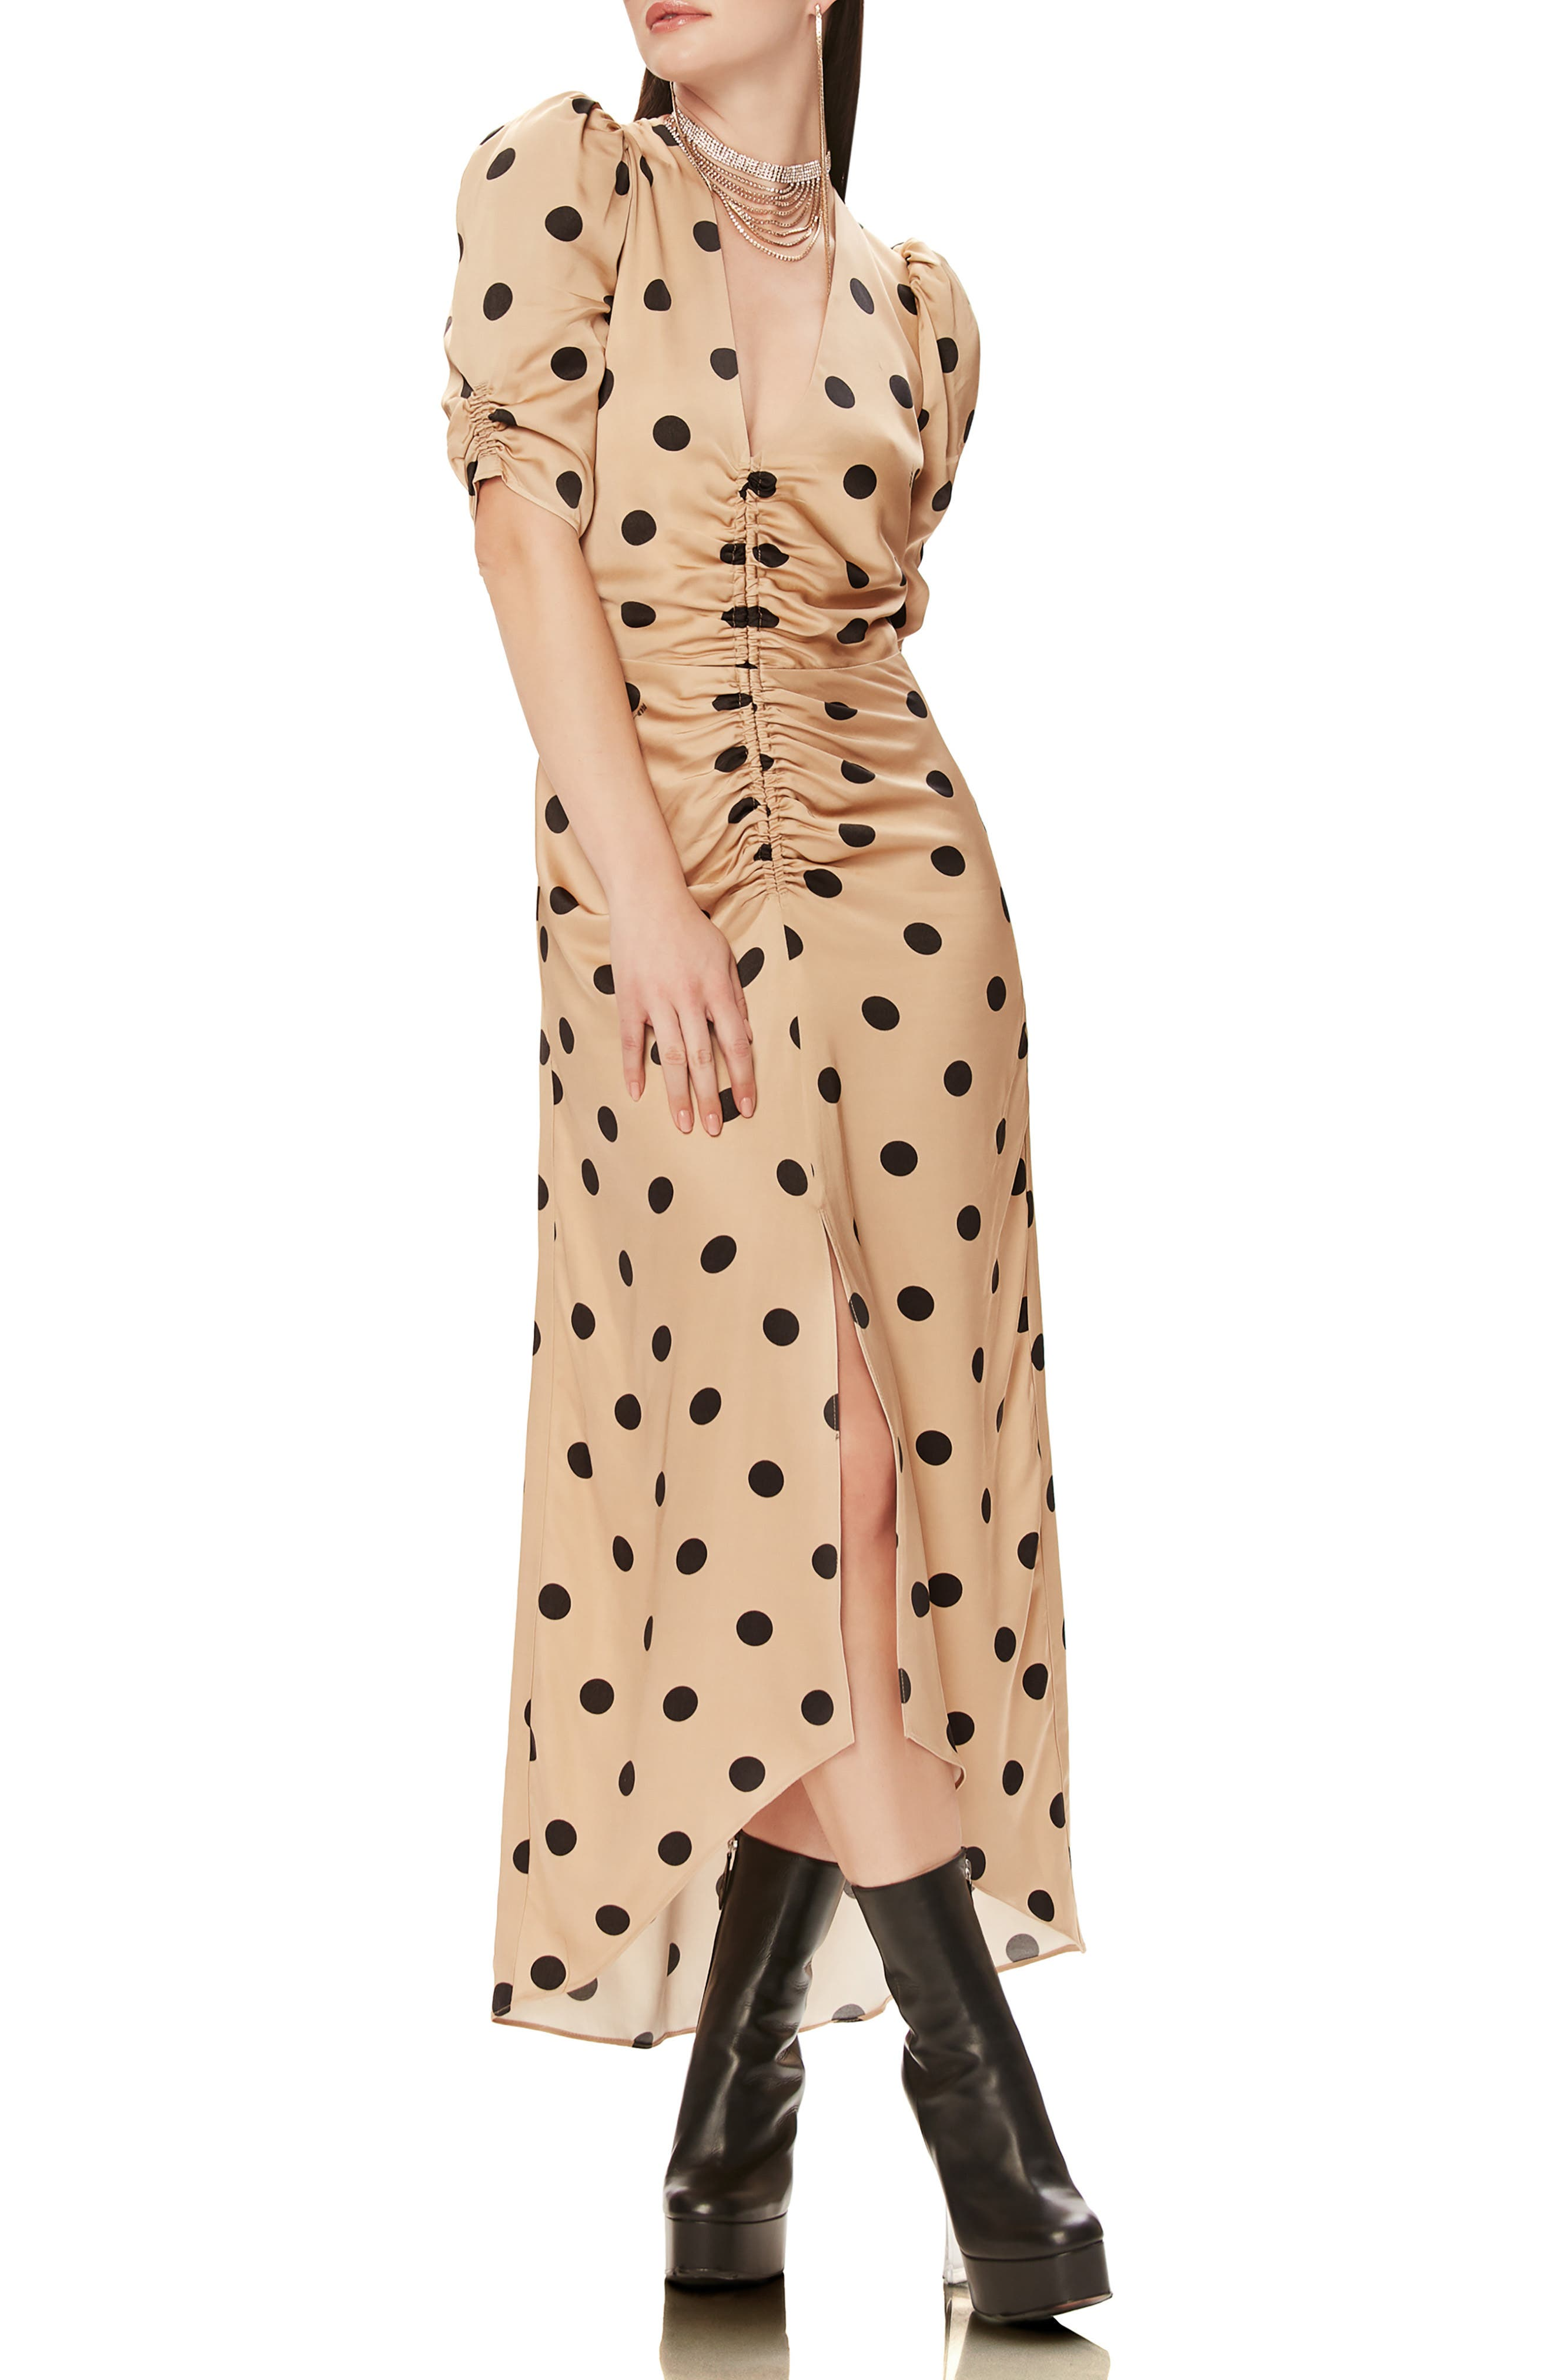 A ruched front and dramatic front slit add flirty, flattering details to a puff-sleeve satin dress in a bold print. Style Name: Afrm Suki Ruched Midi Dress. Style Number: 5971262 1. Available in stores.